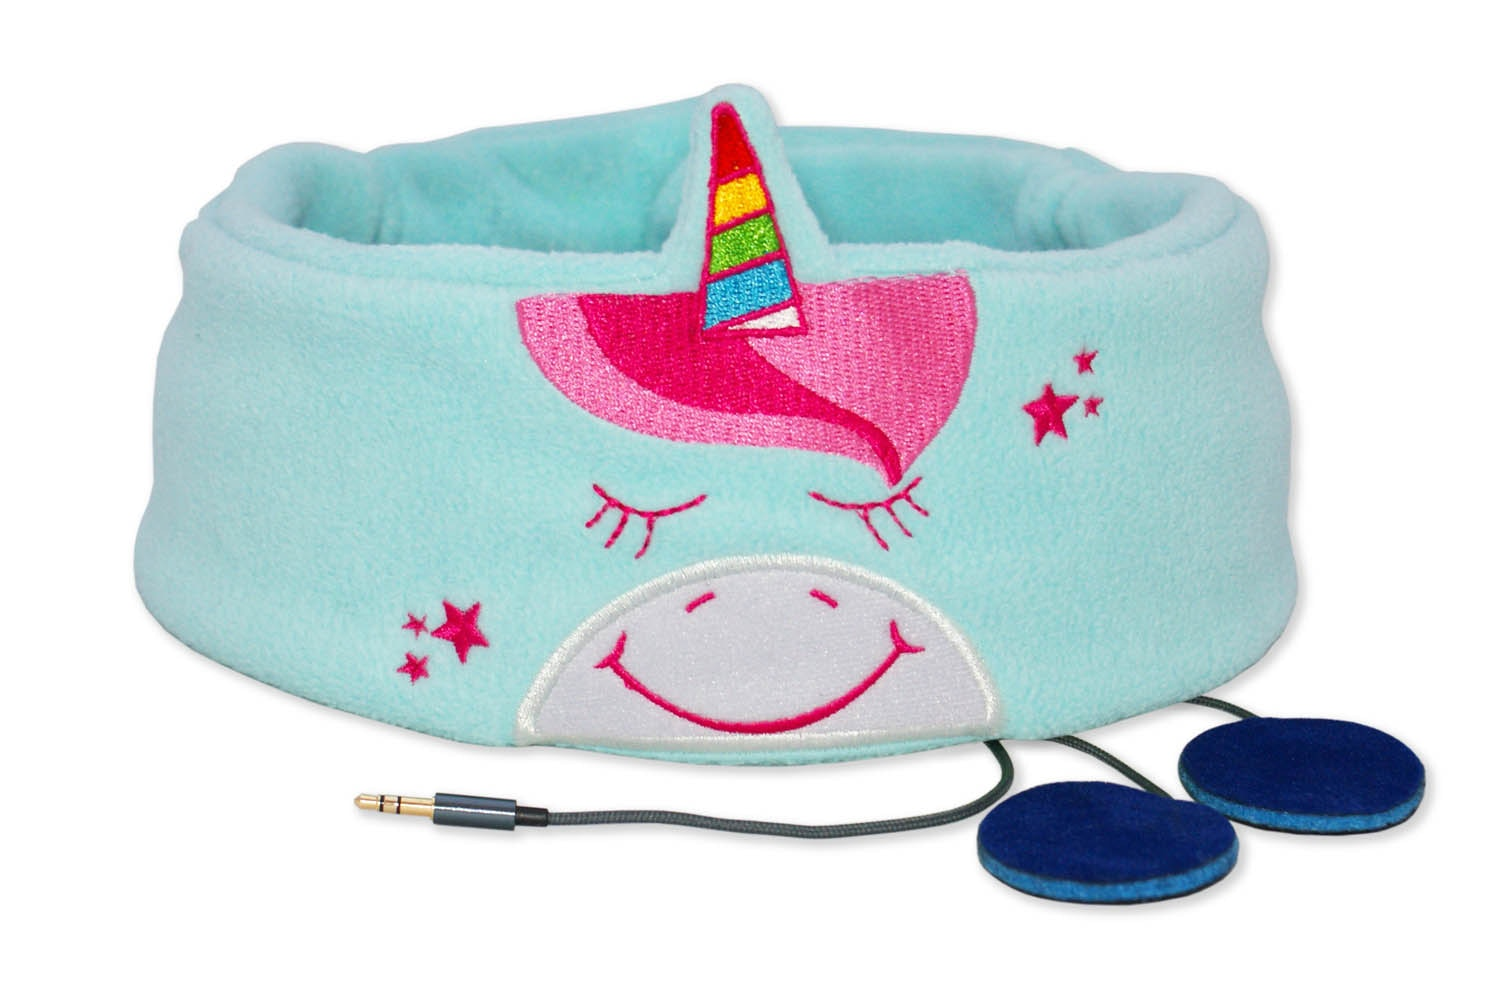 Snuggly Rascals Kids Headphones | Unicorn